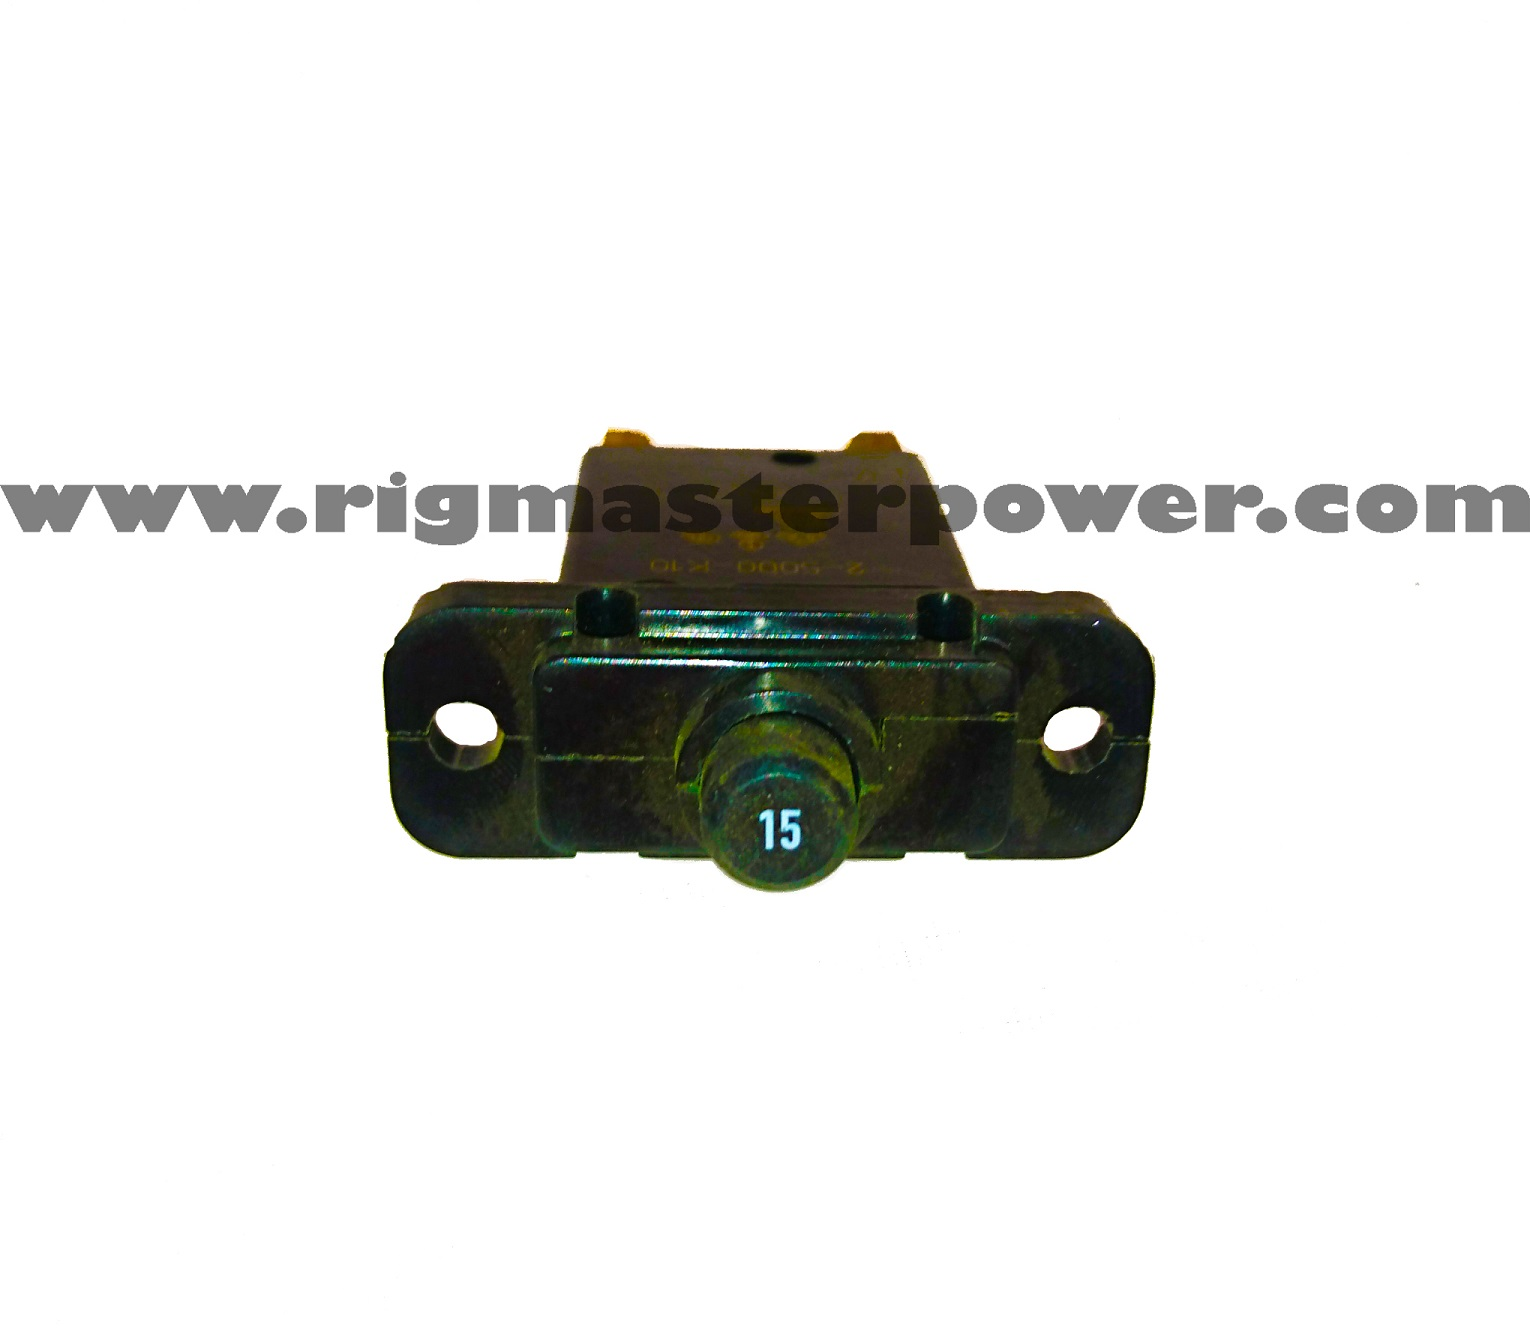 Rigmaster Part Number RP7-014